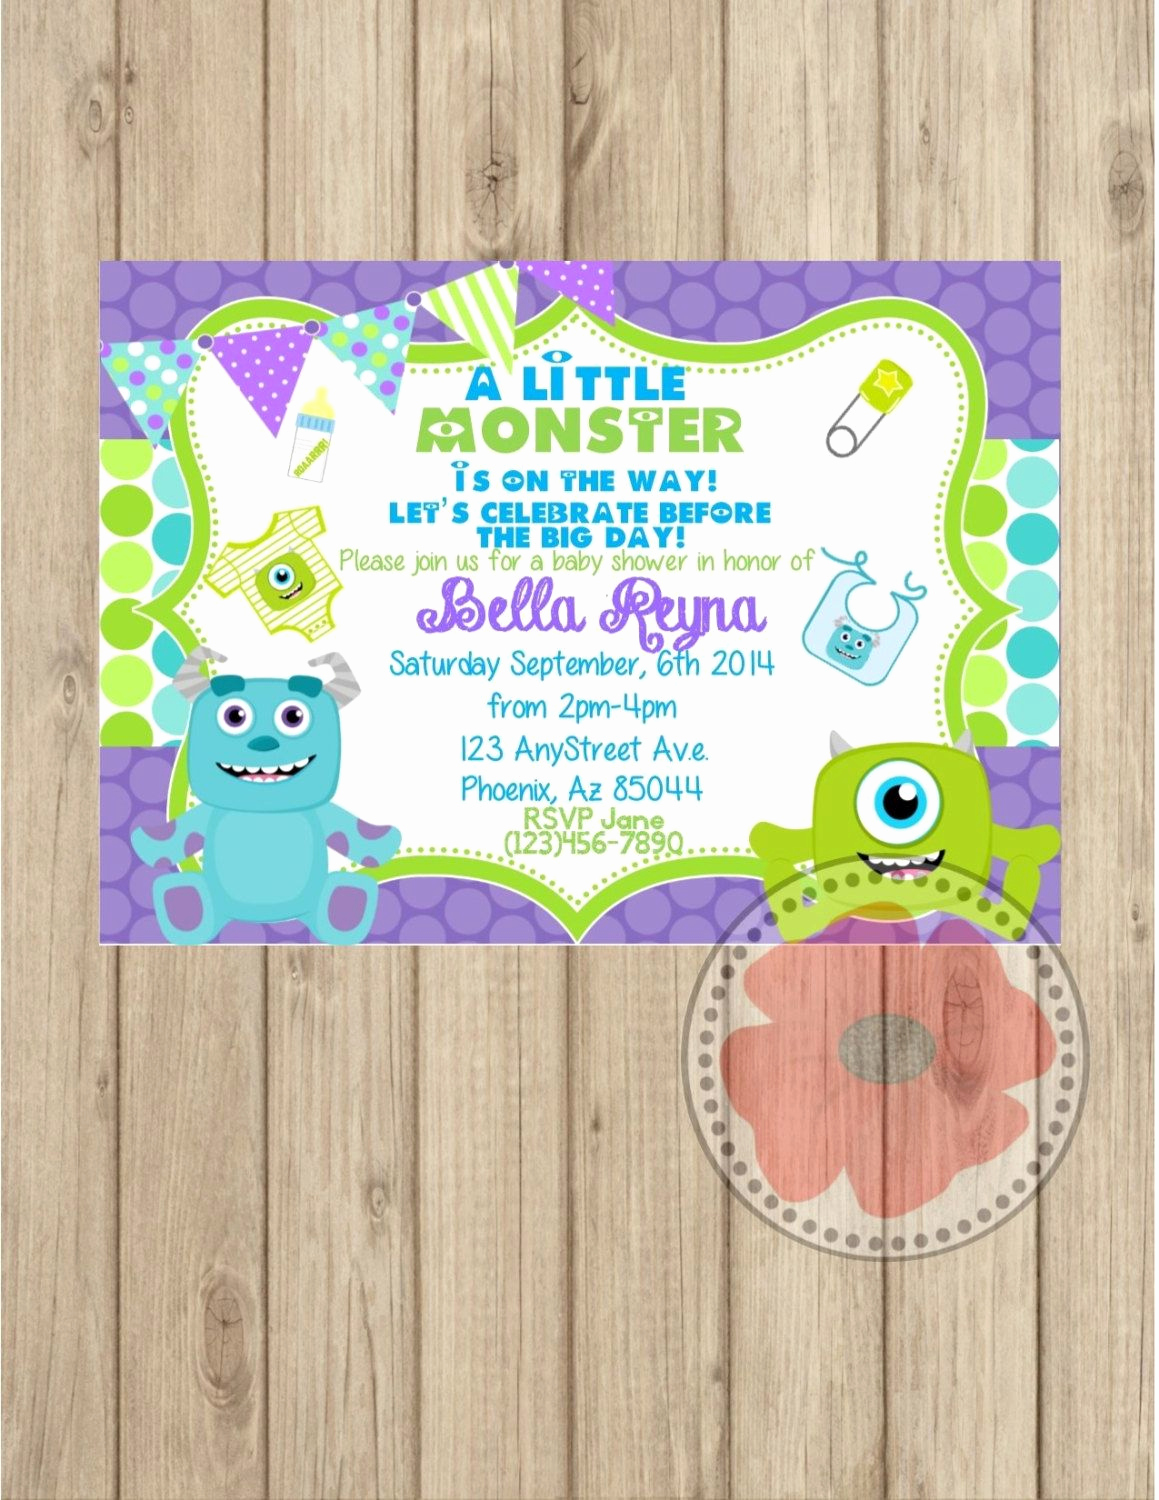 Monsters Inc Baby Shower Invitation Luxury Monsters Inc Baby Shower Invitation Diy by